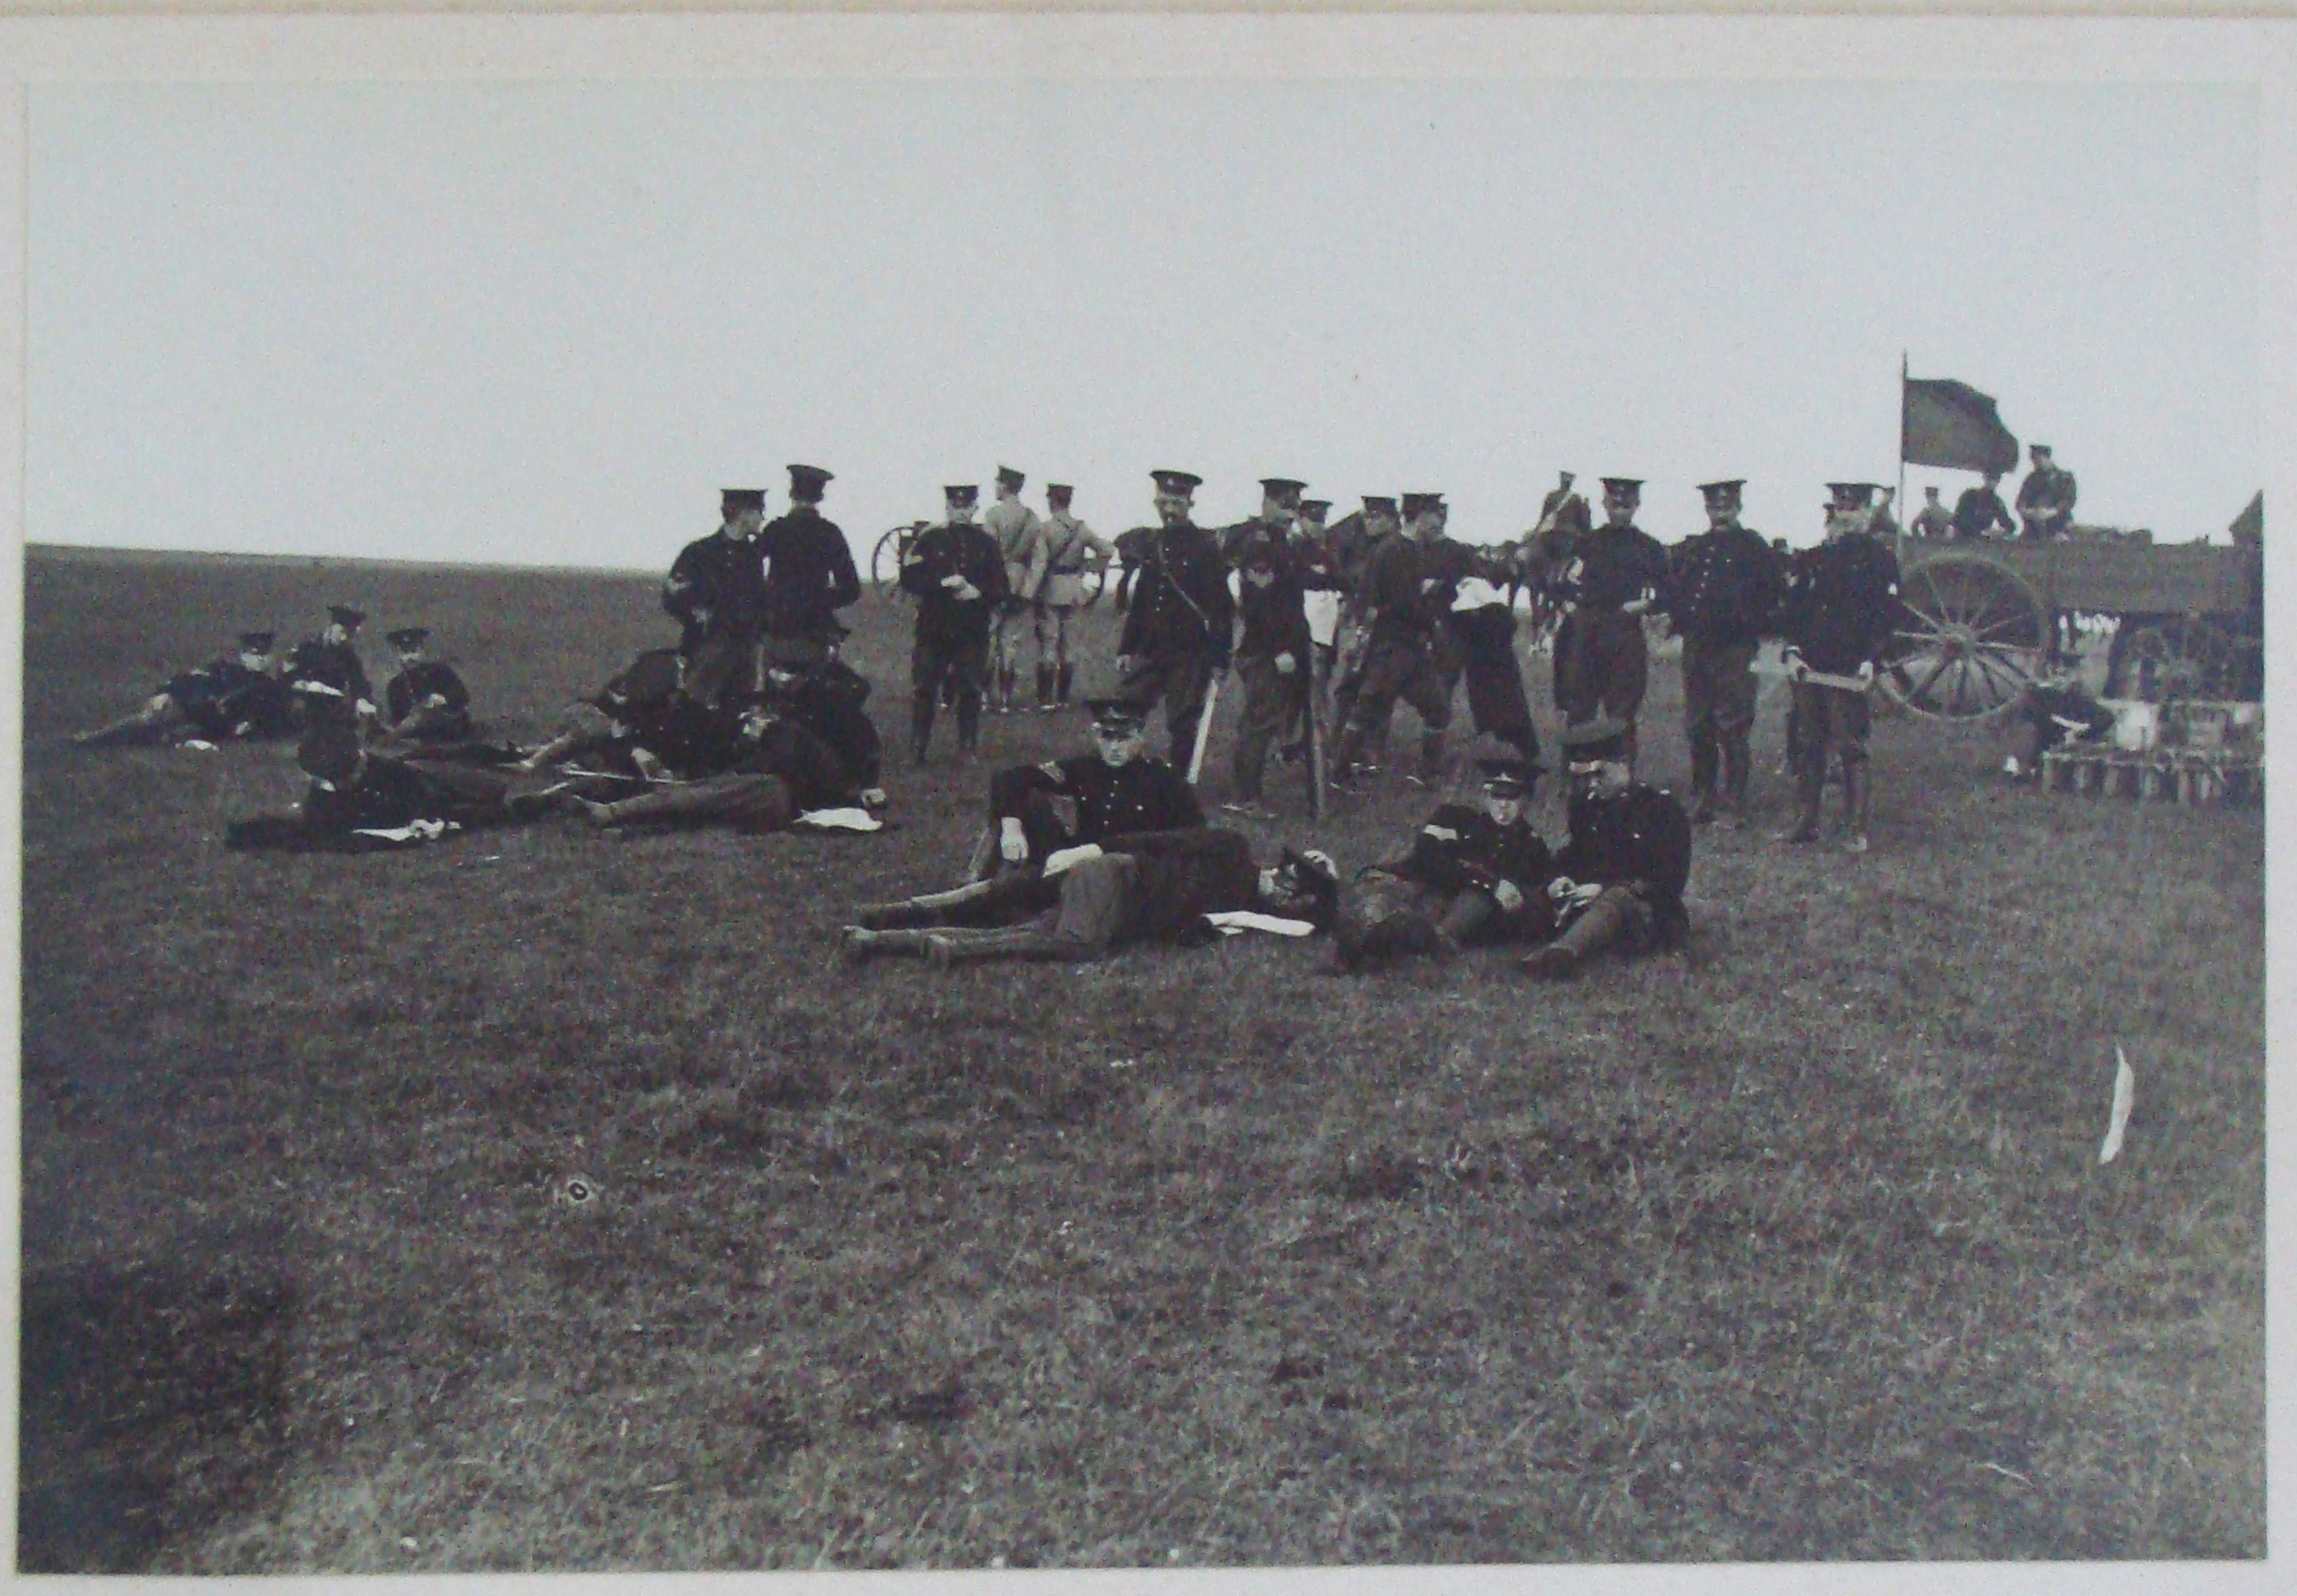 The Canadian Heavy Artillery Team in England